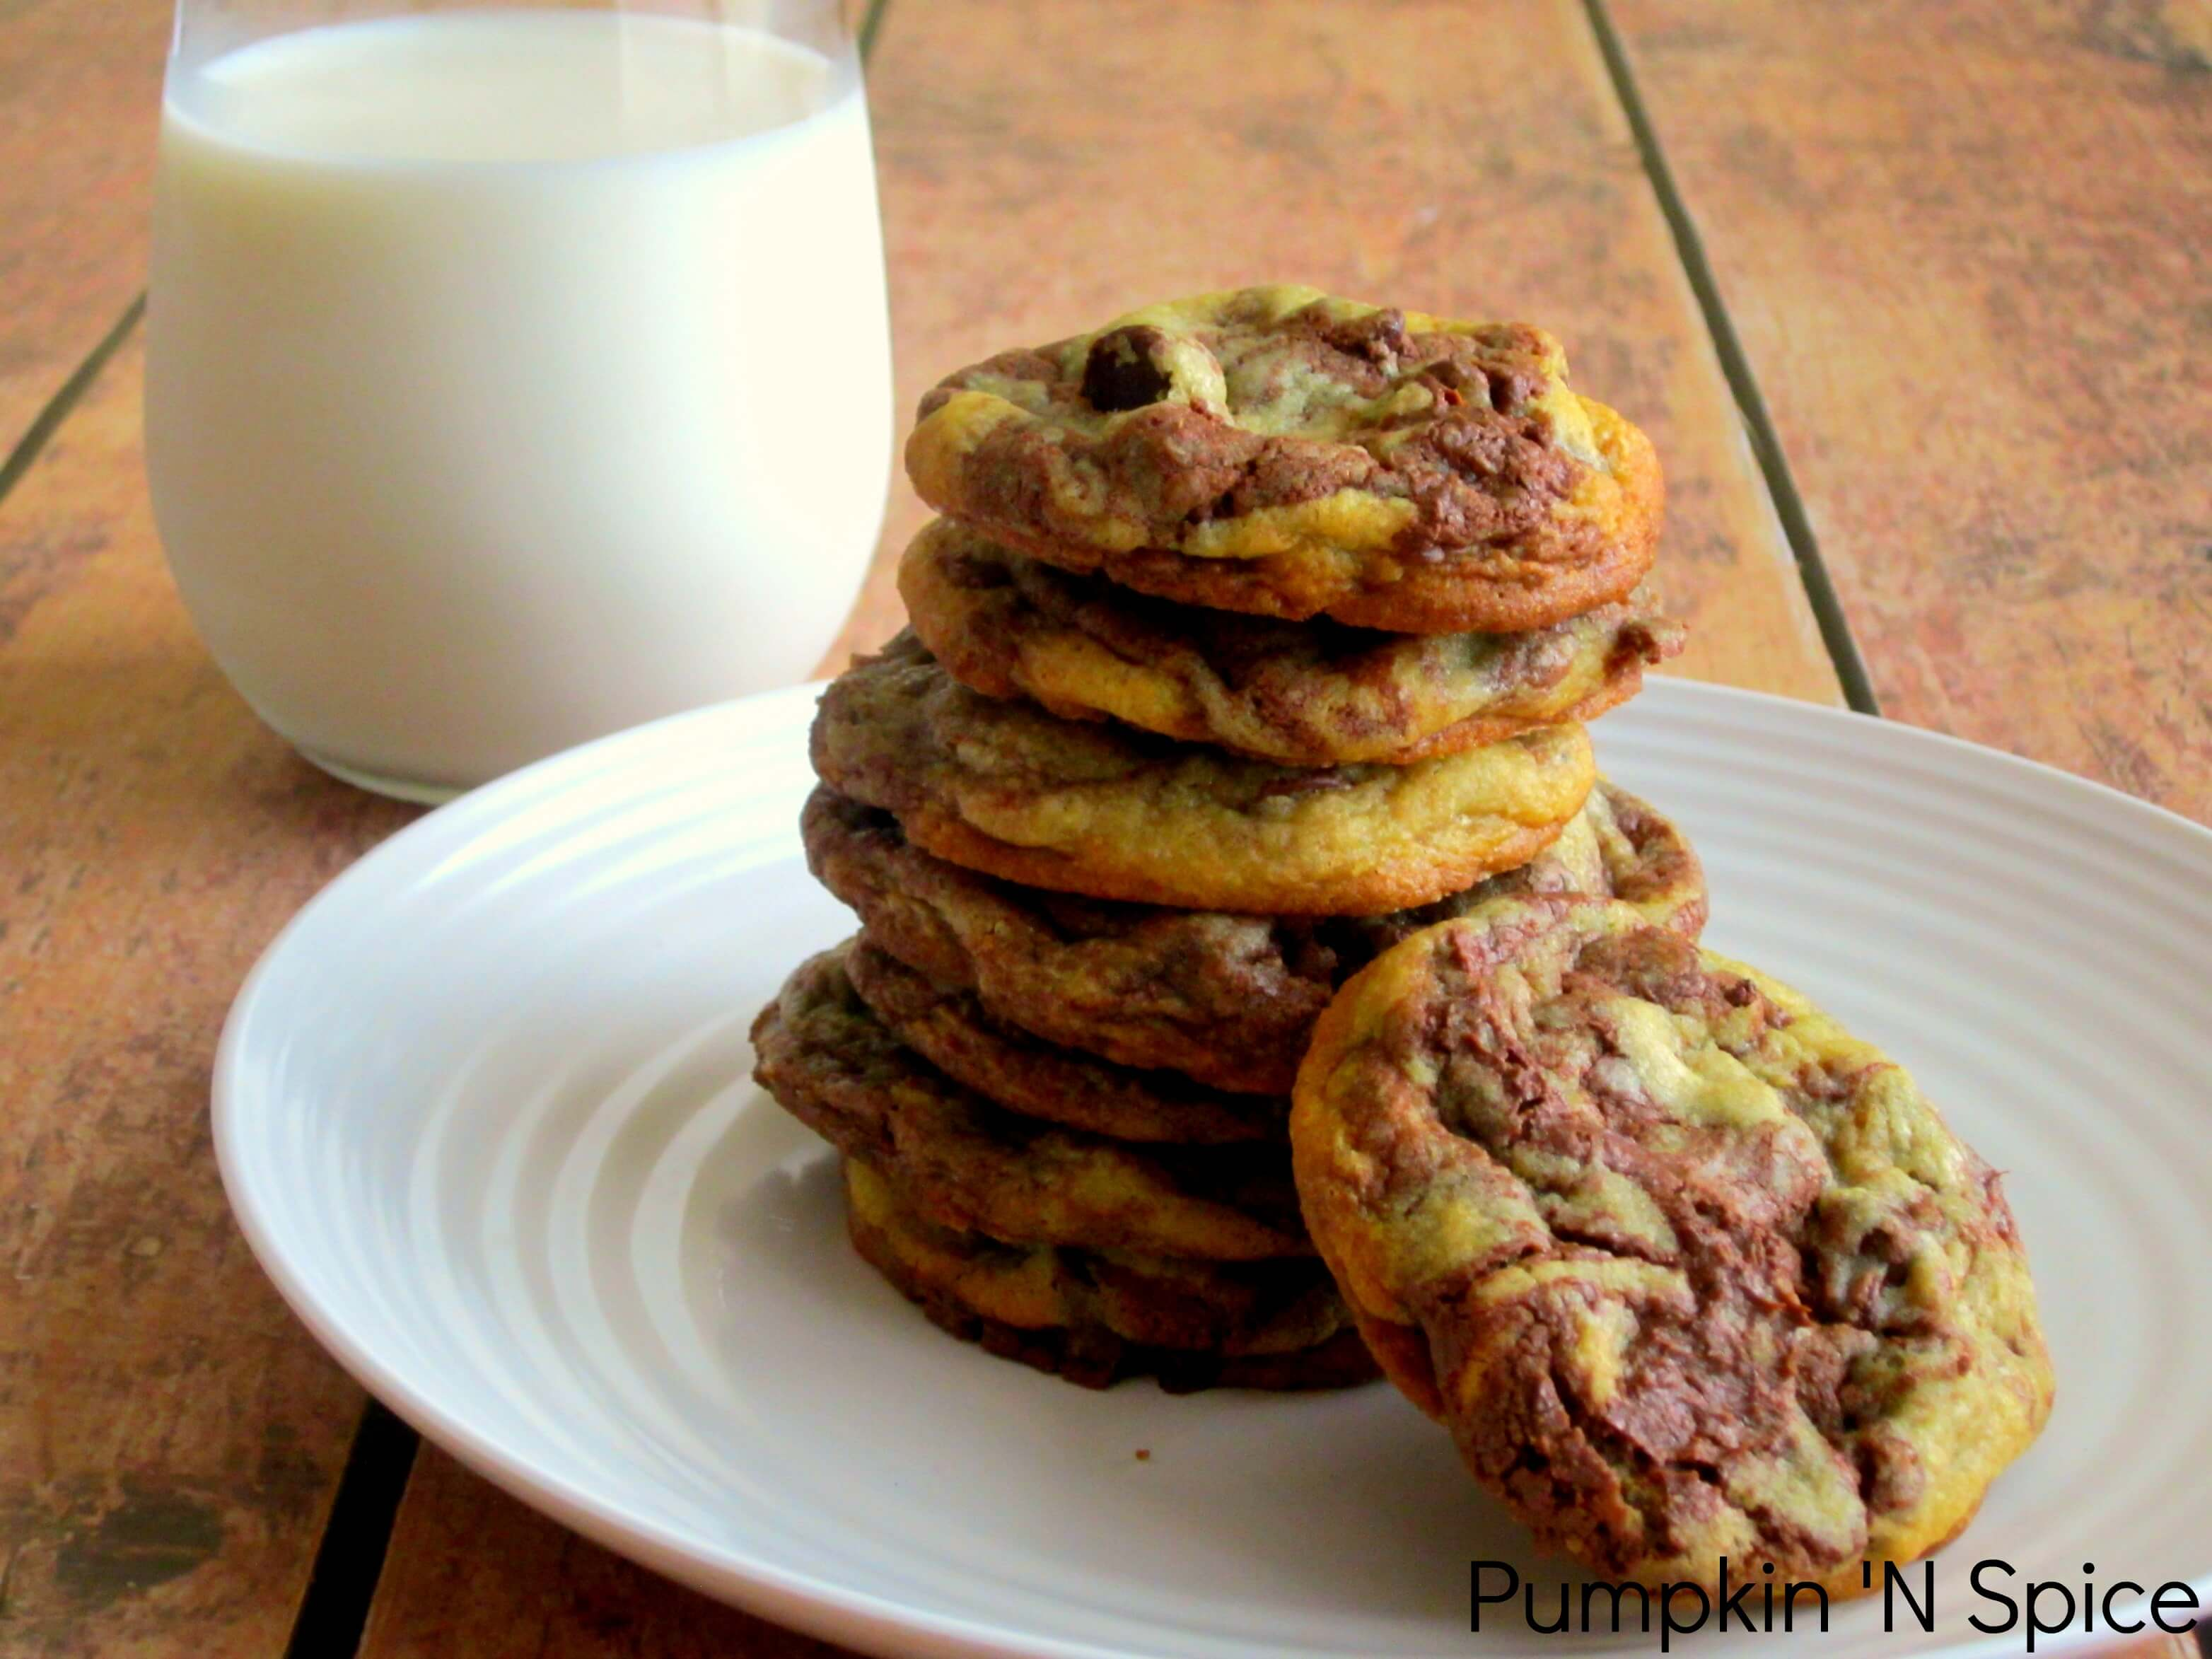 Nutella Stuffed Chocolate Chip Cookies - Pumpkin 'N Spice